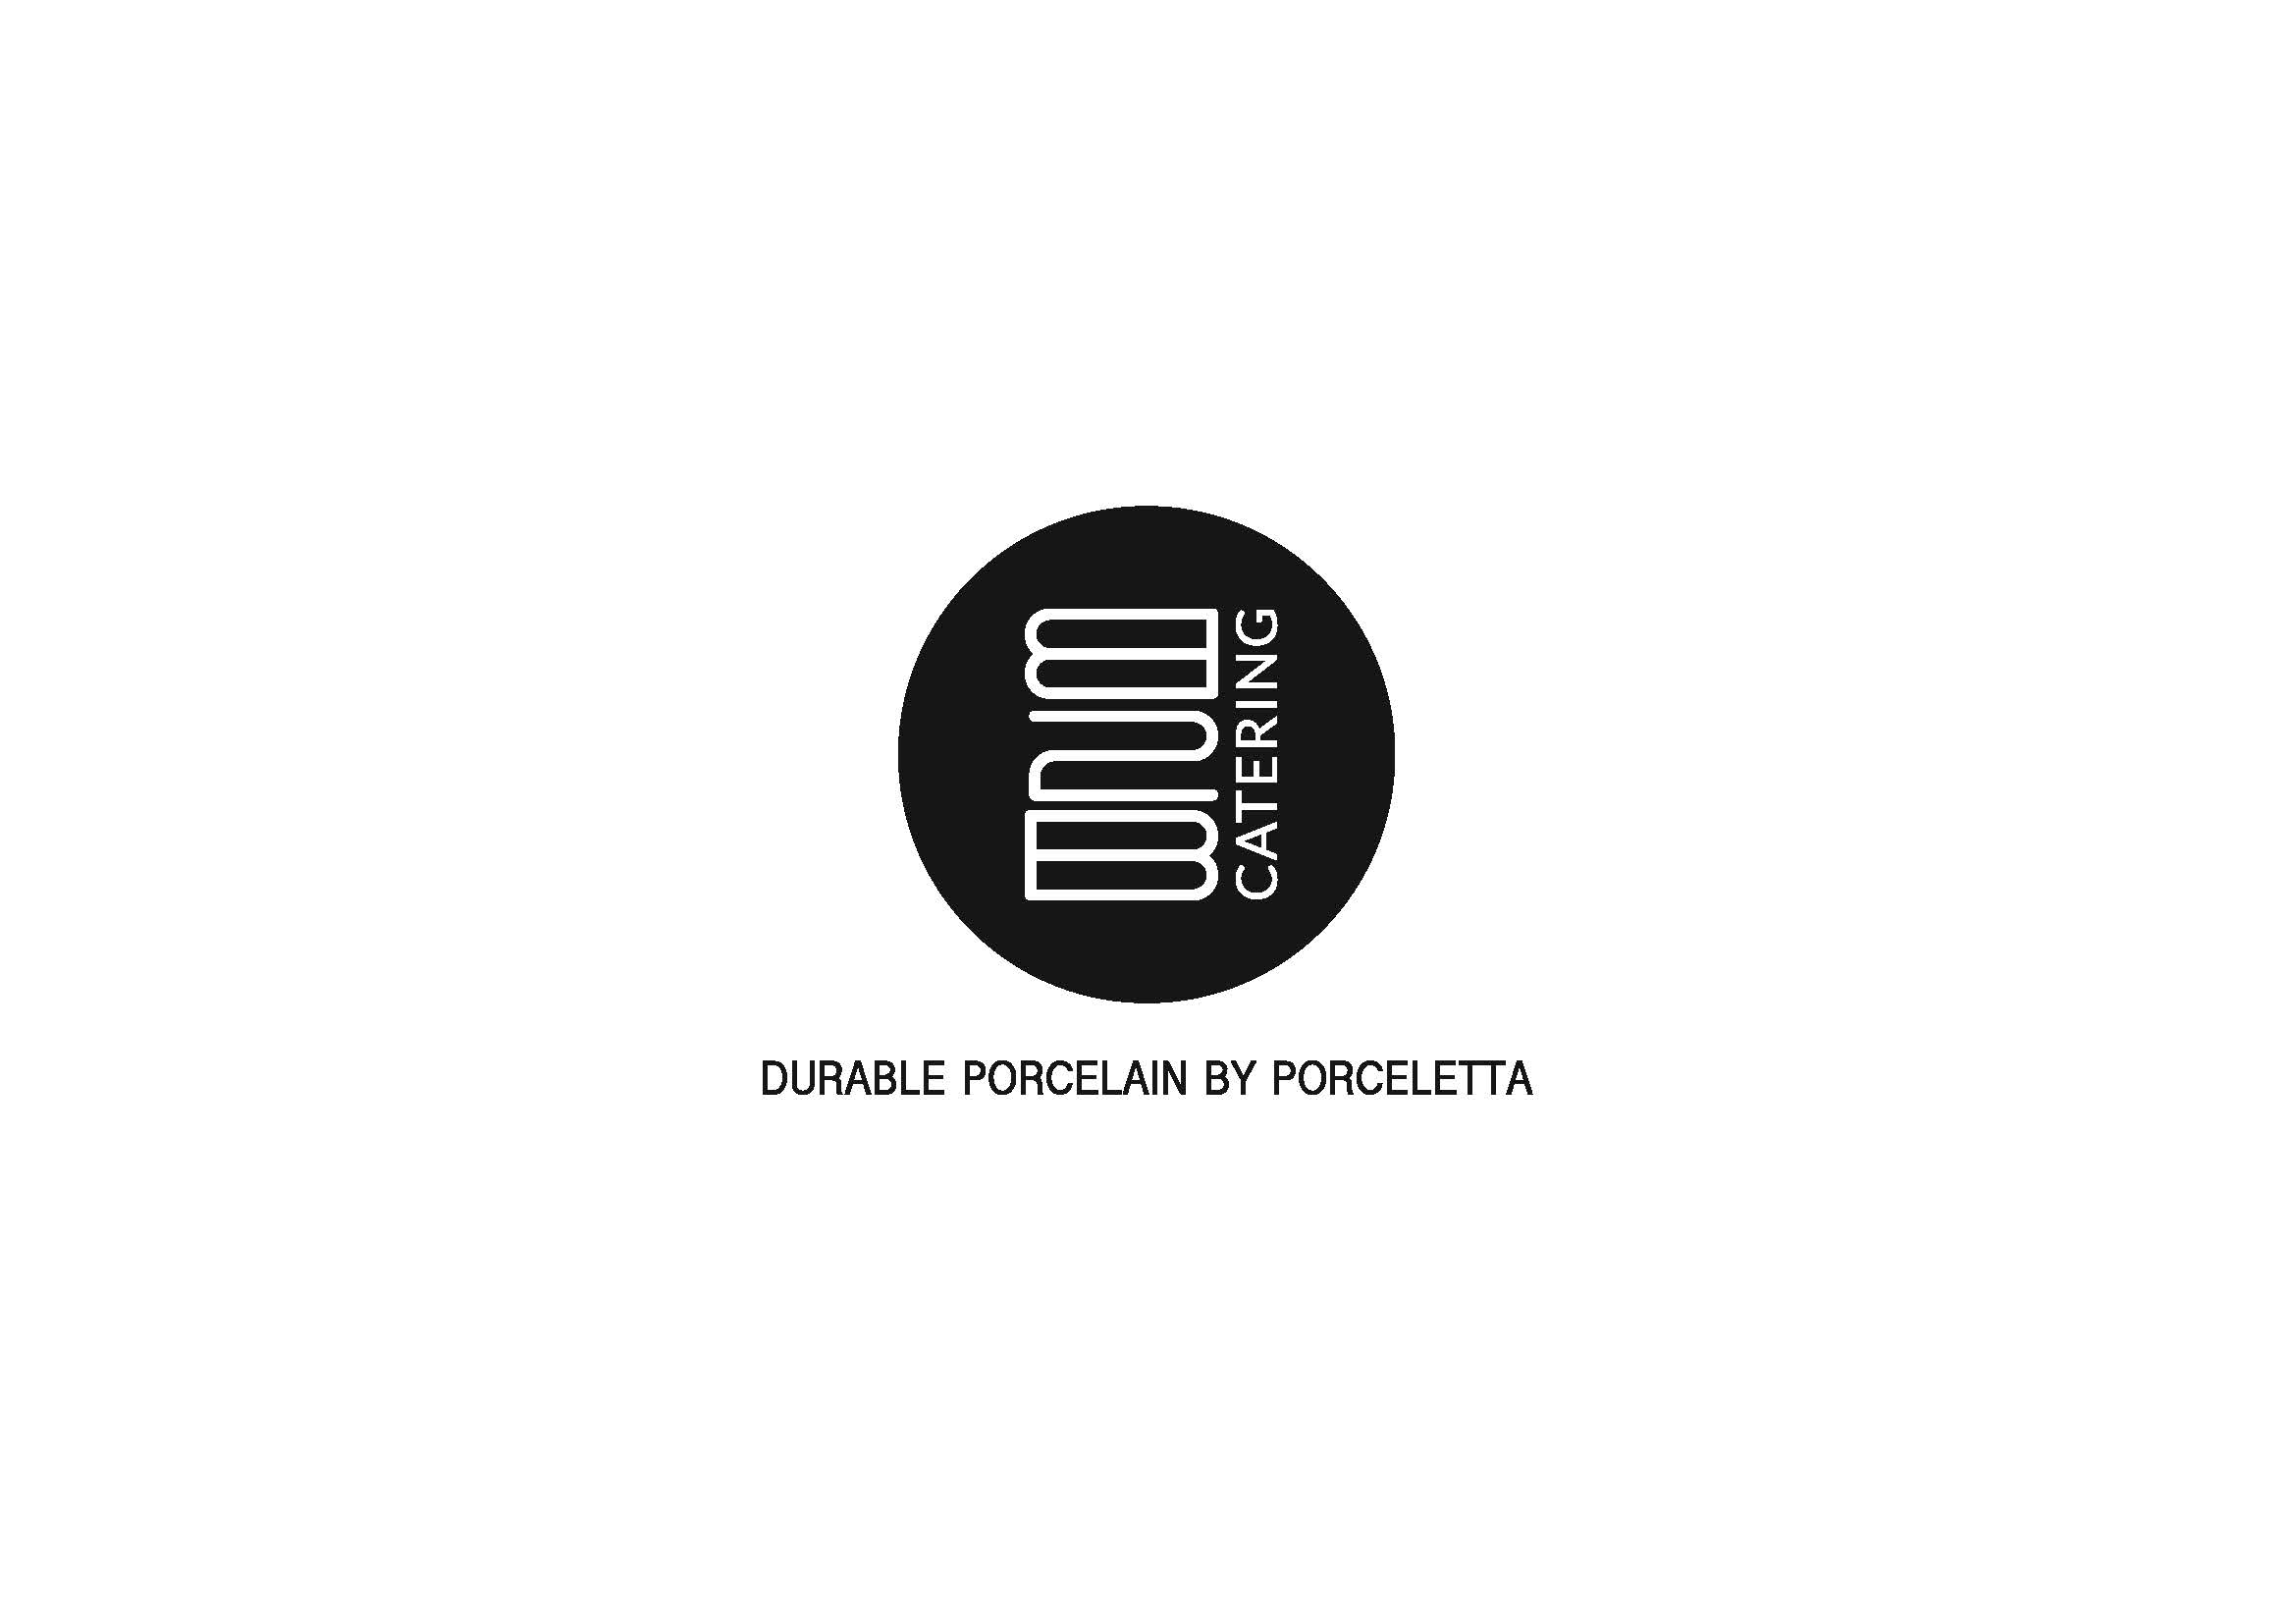 B2b by Porceletta